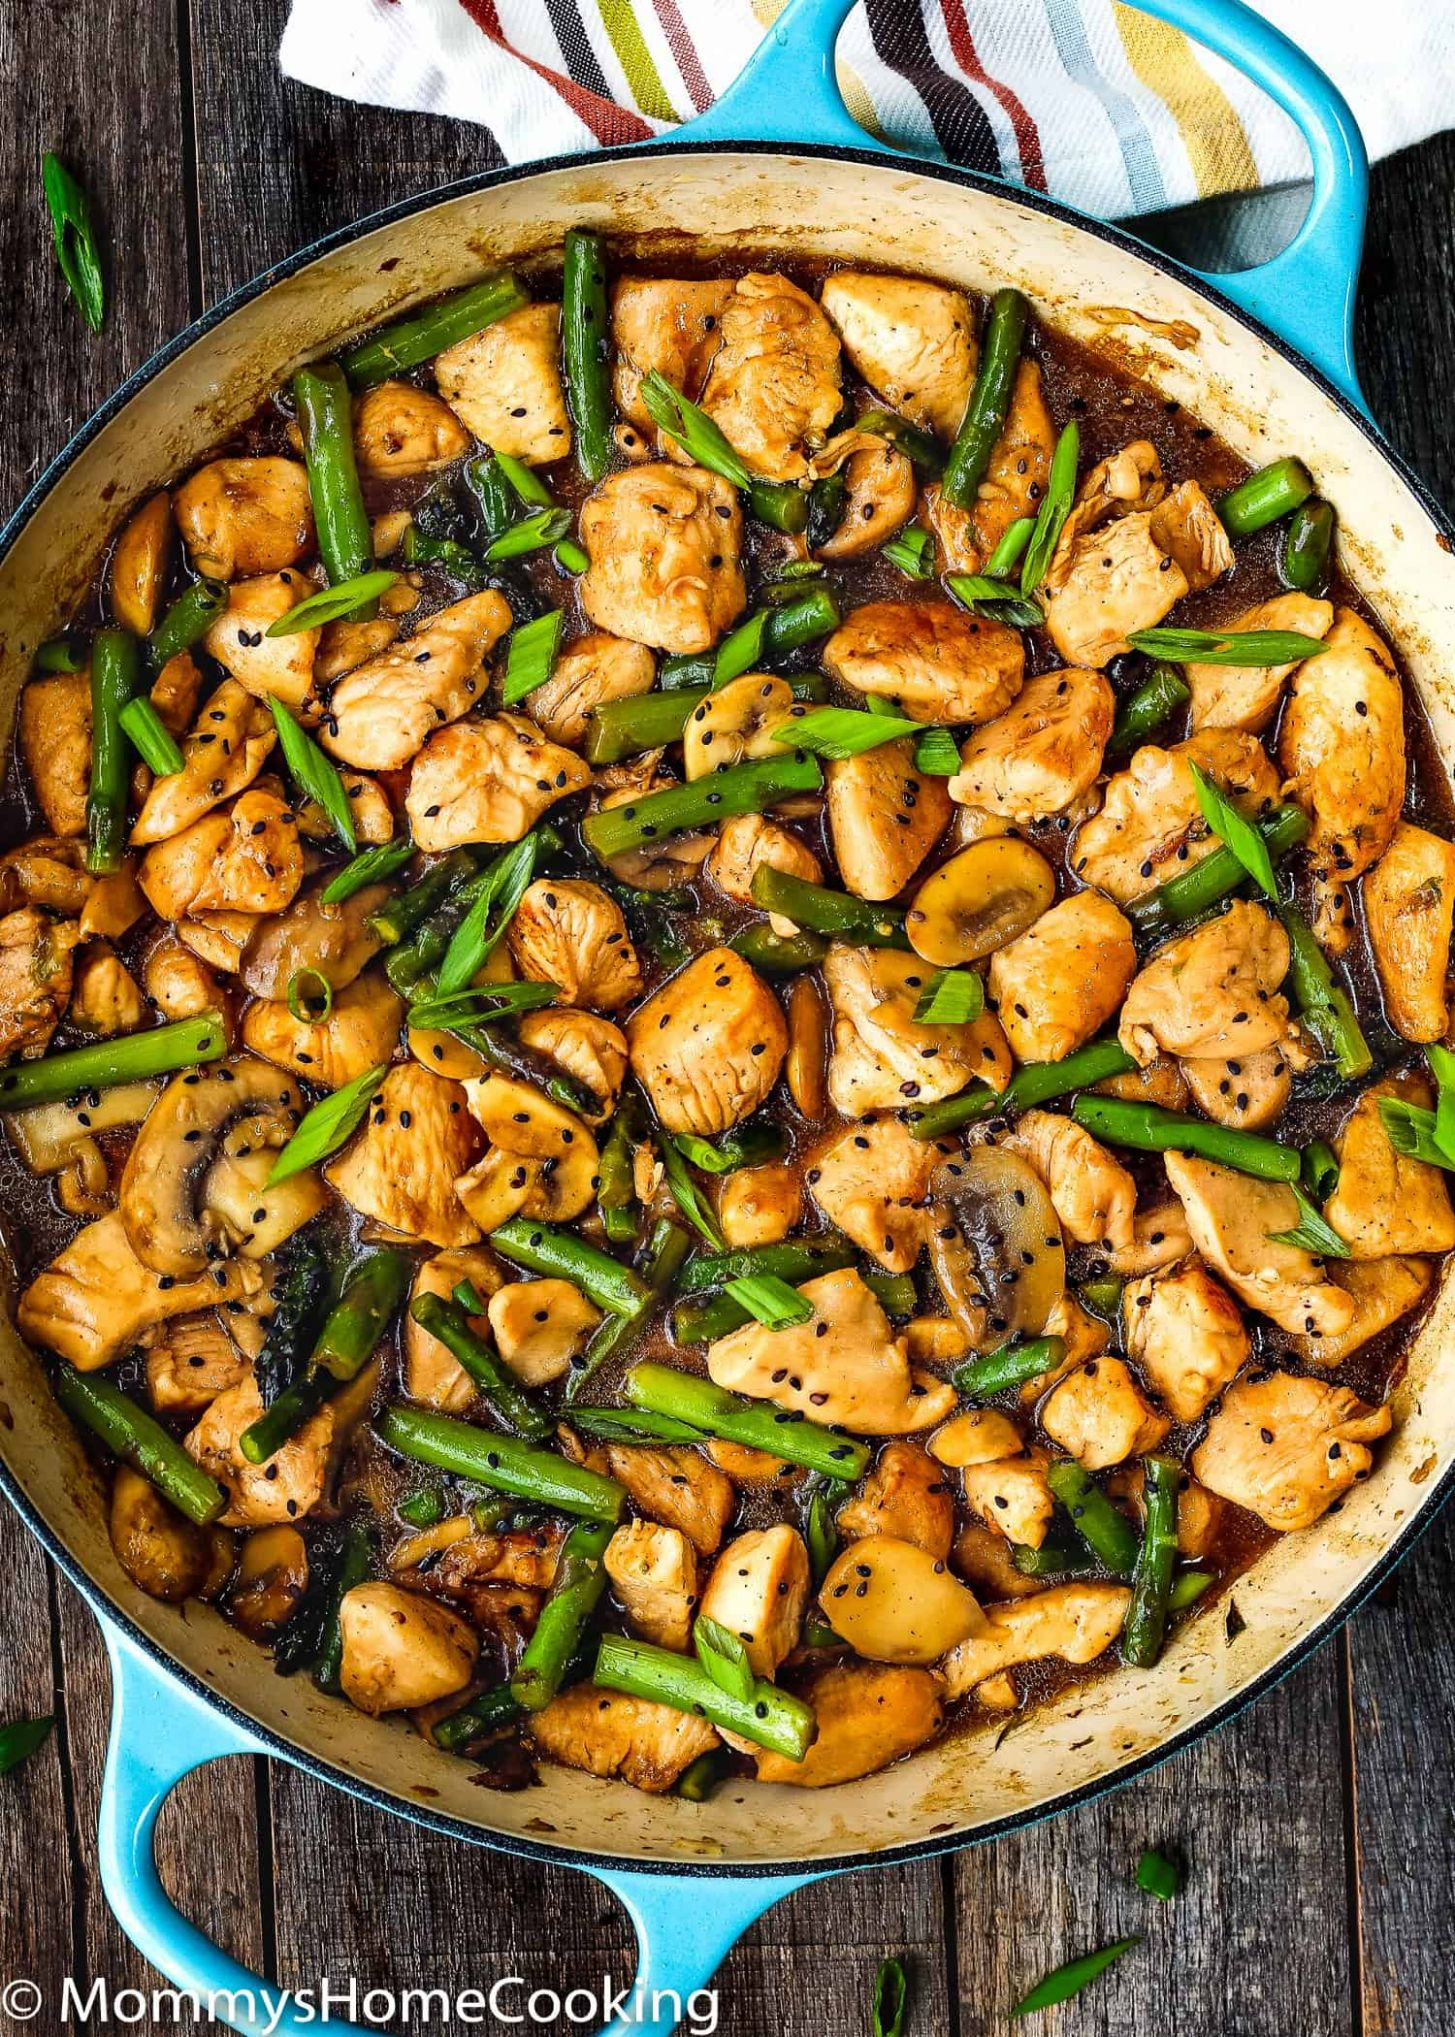 Easy Healthy Chicken and Asparagus Skillet - Food Recipes Easy Healthy